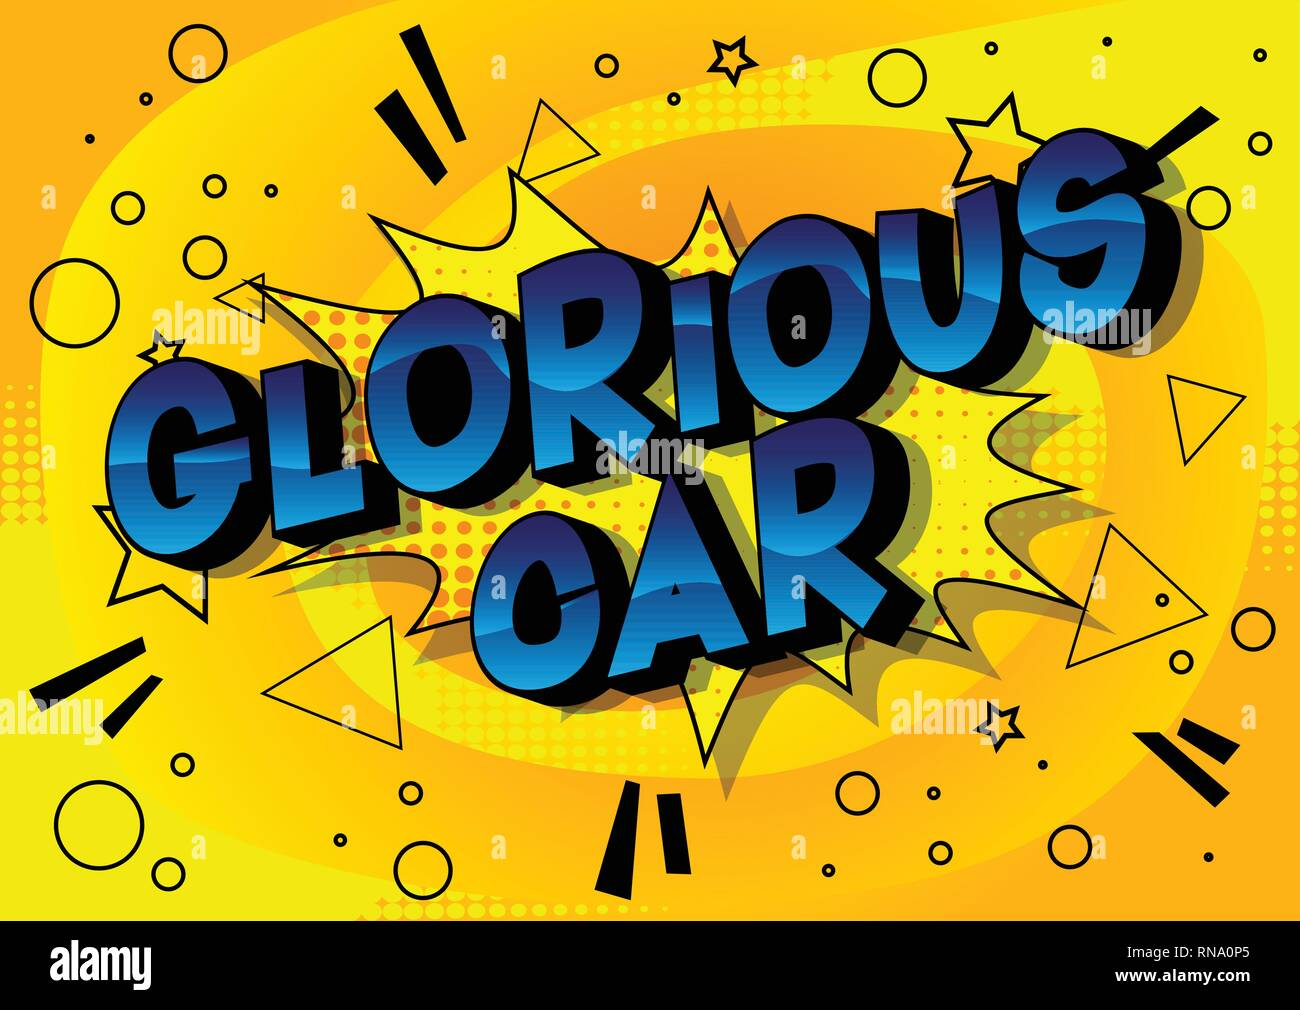 Glorious Car - Vector illustrated comic book style phrase on abstract background. - Stock Image